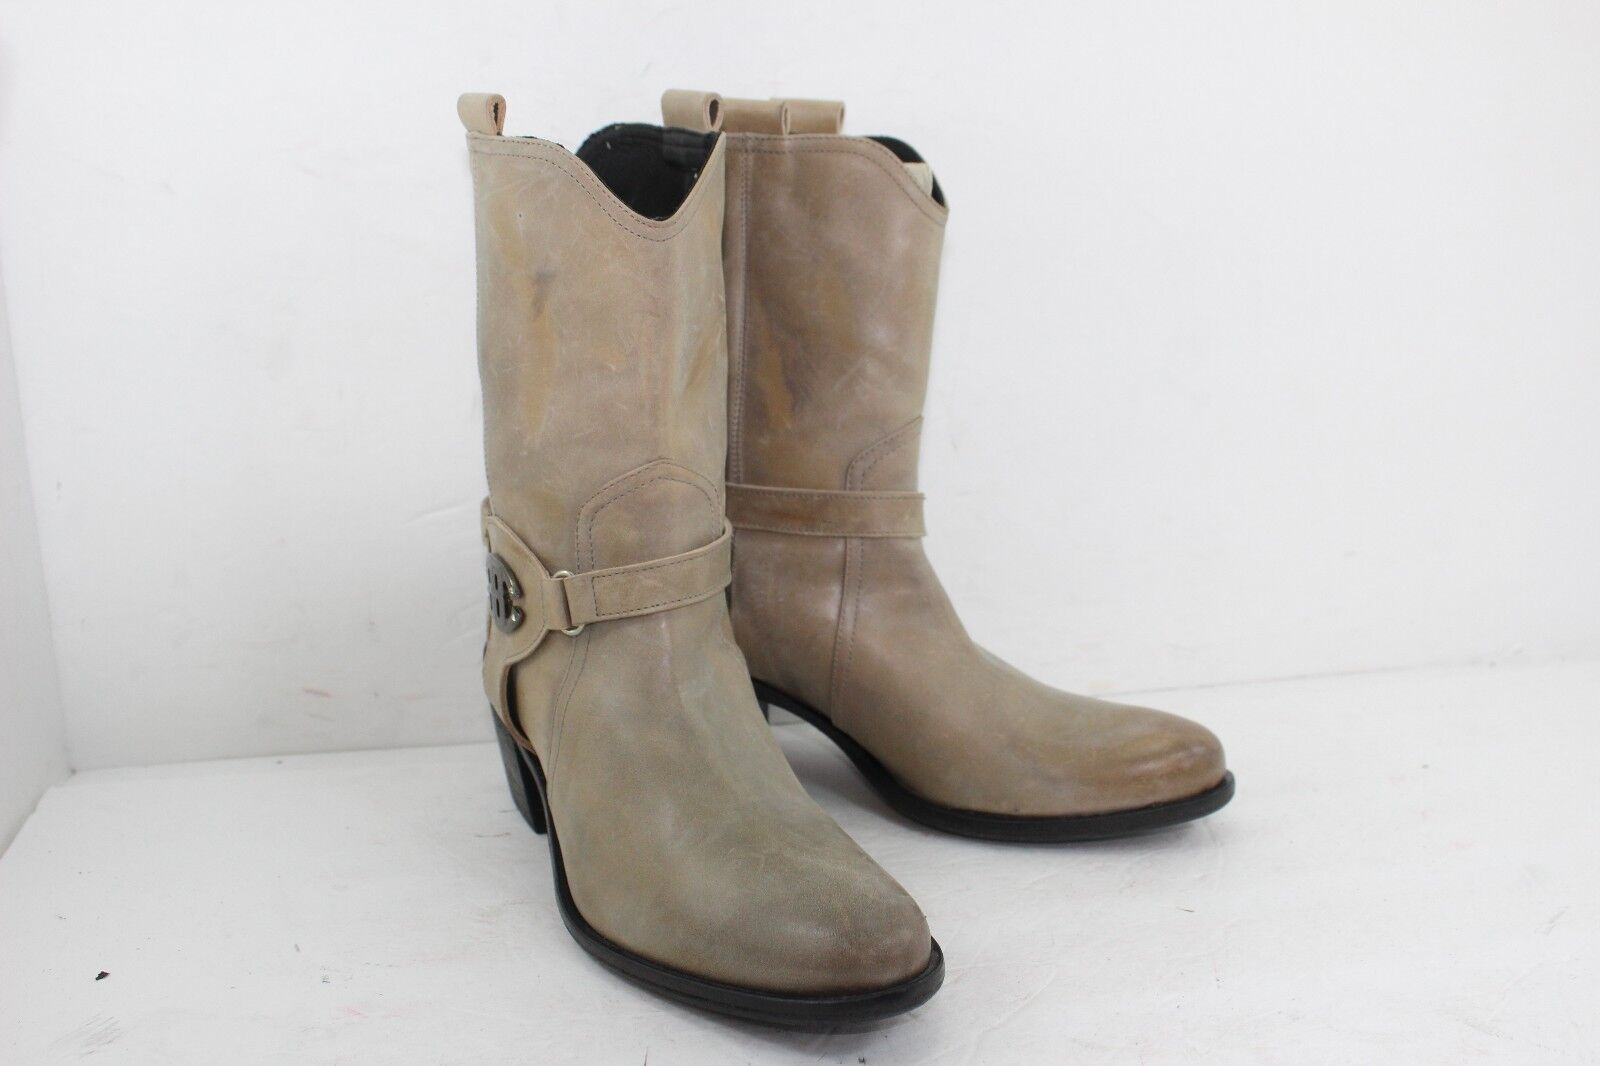 BAGATTO BOOYS BEIGE IN GREAT CONDITION SZ 38 US 8 B IN LEATHERMADE IN ITALY